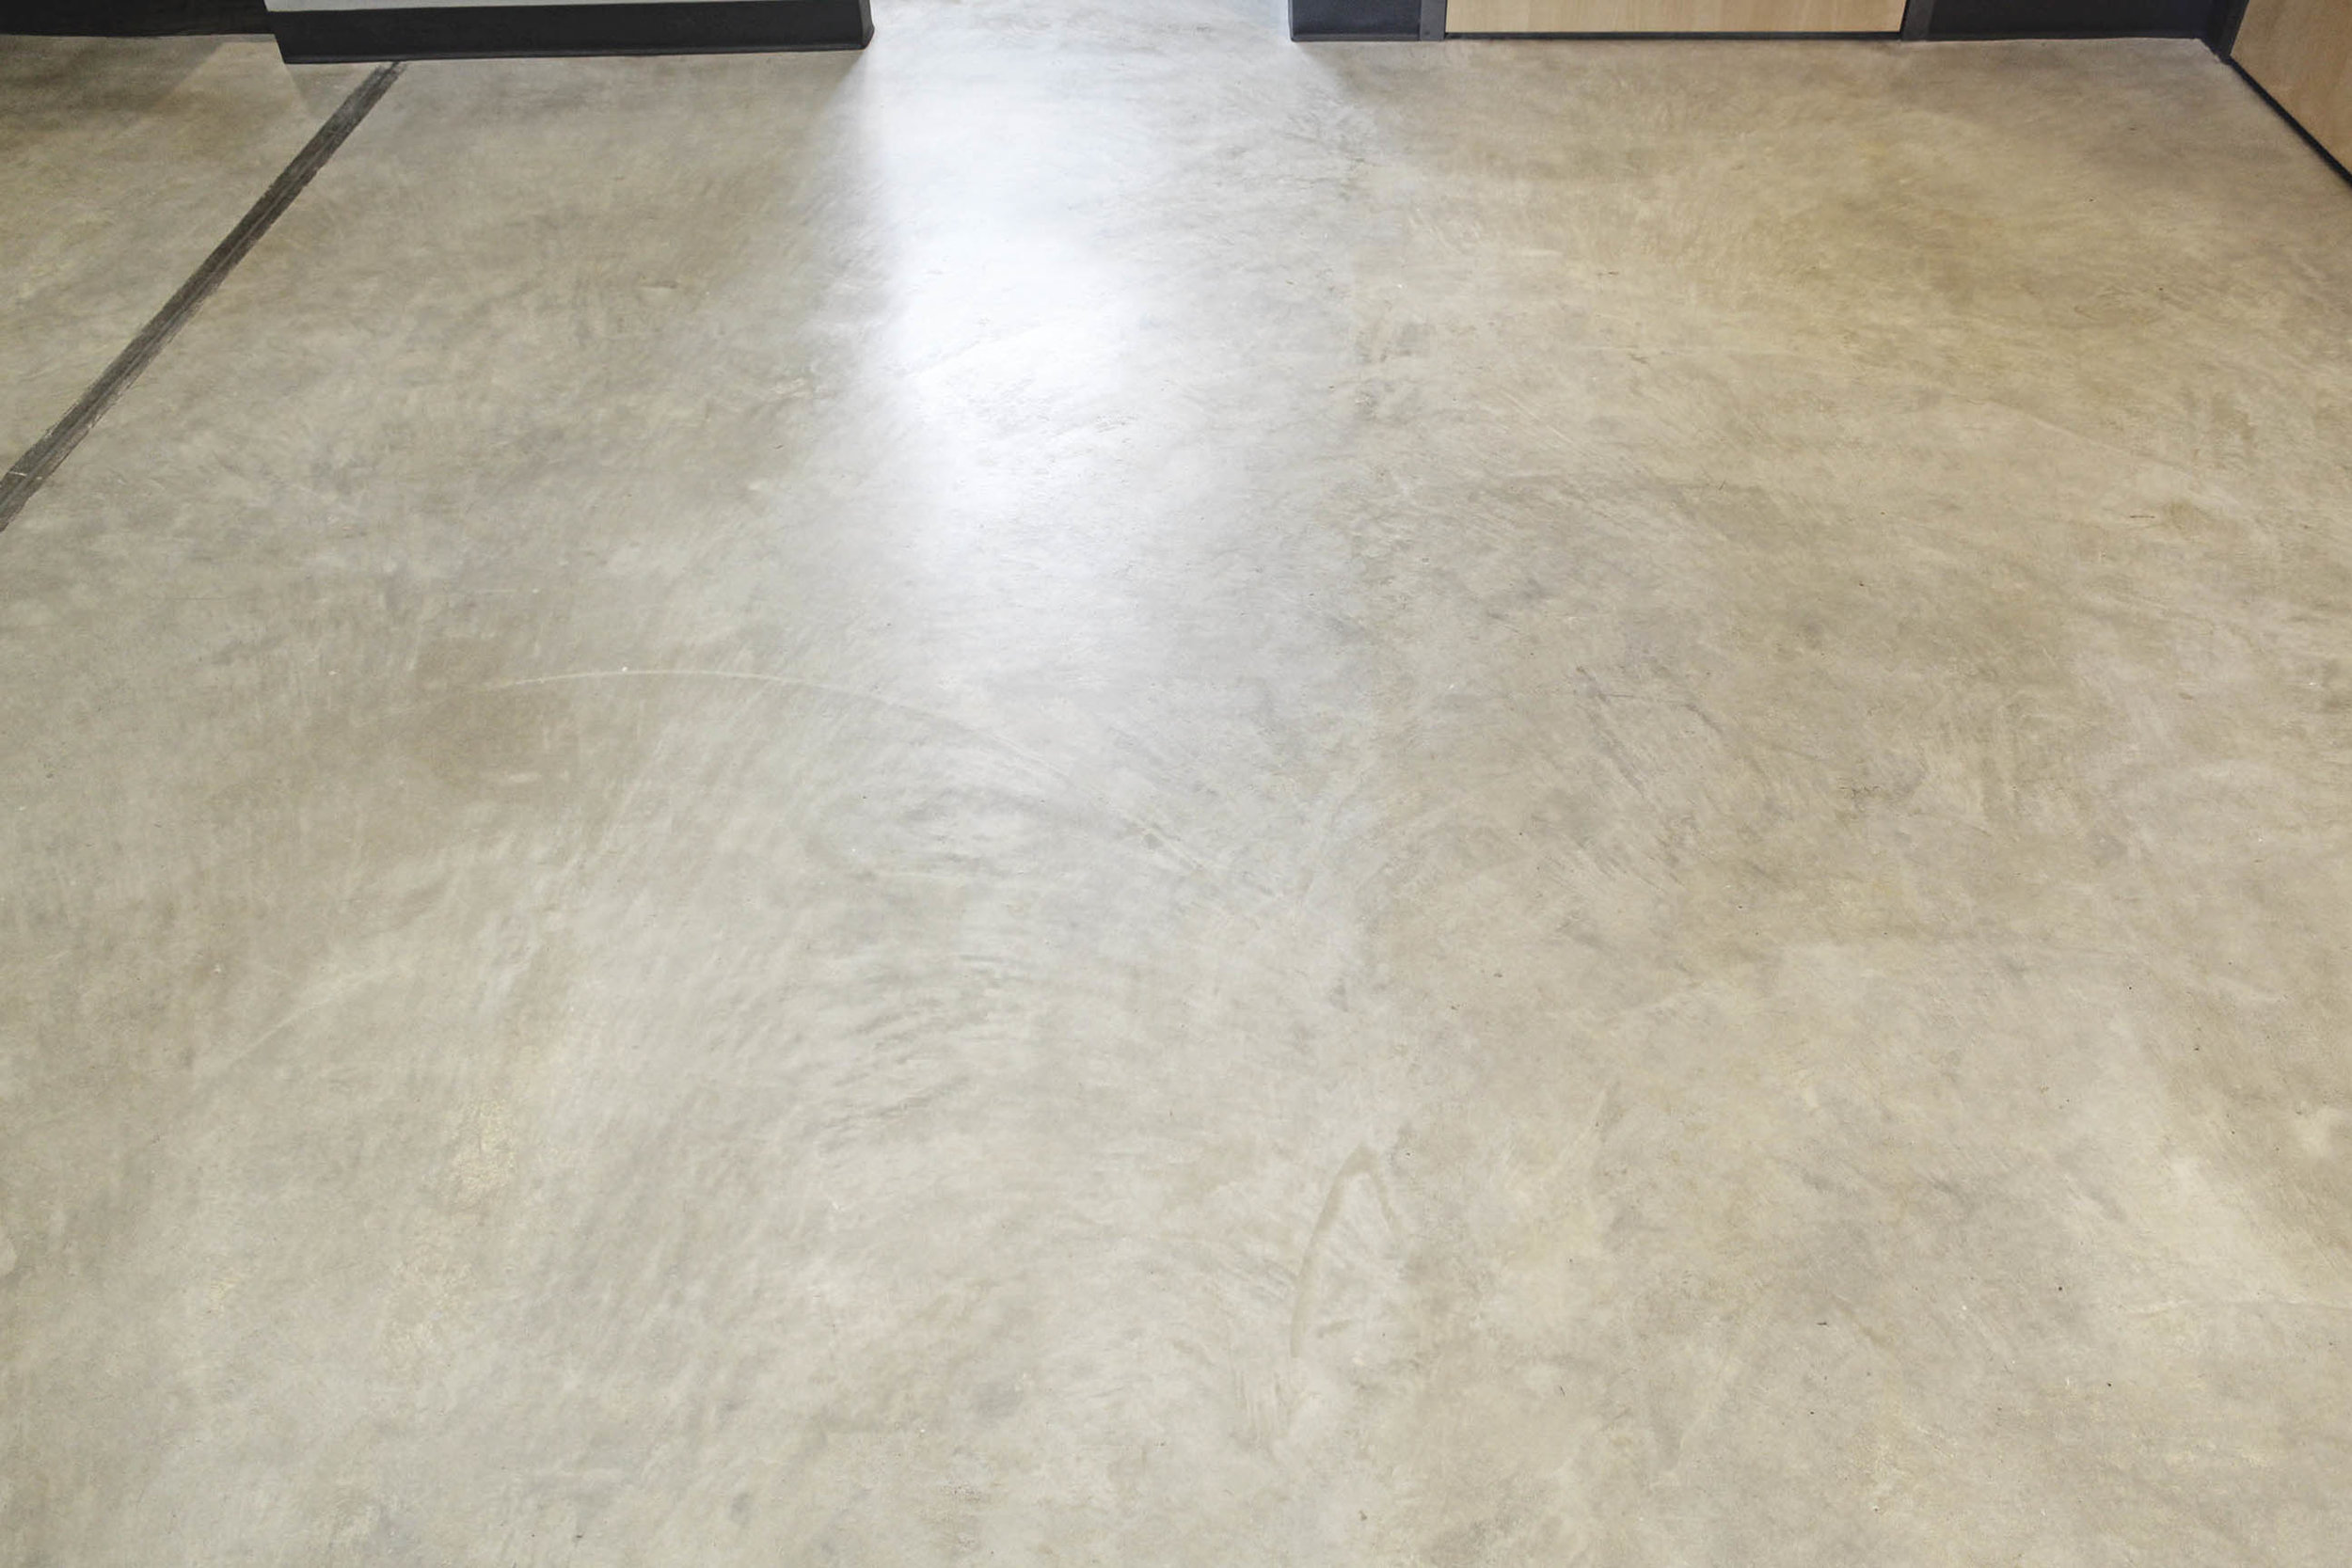 20190526-white polished concrete floor2.jpg